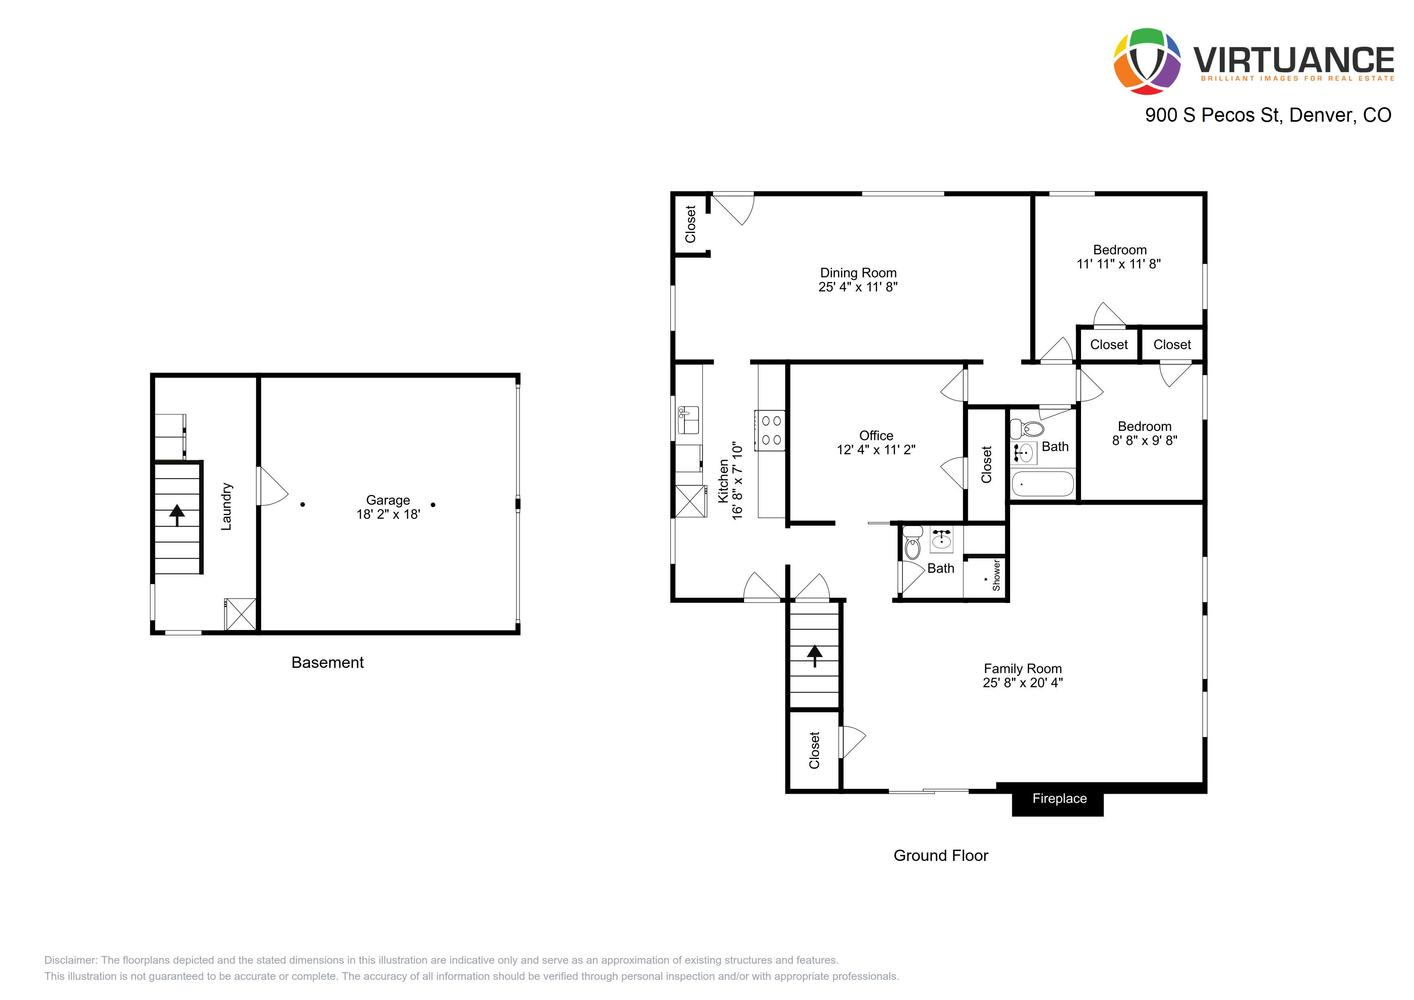 Click here to see large floor plan